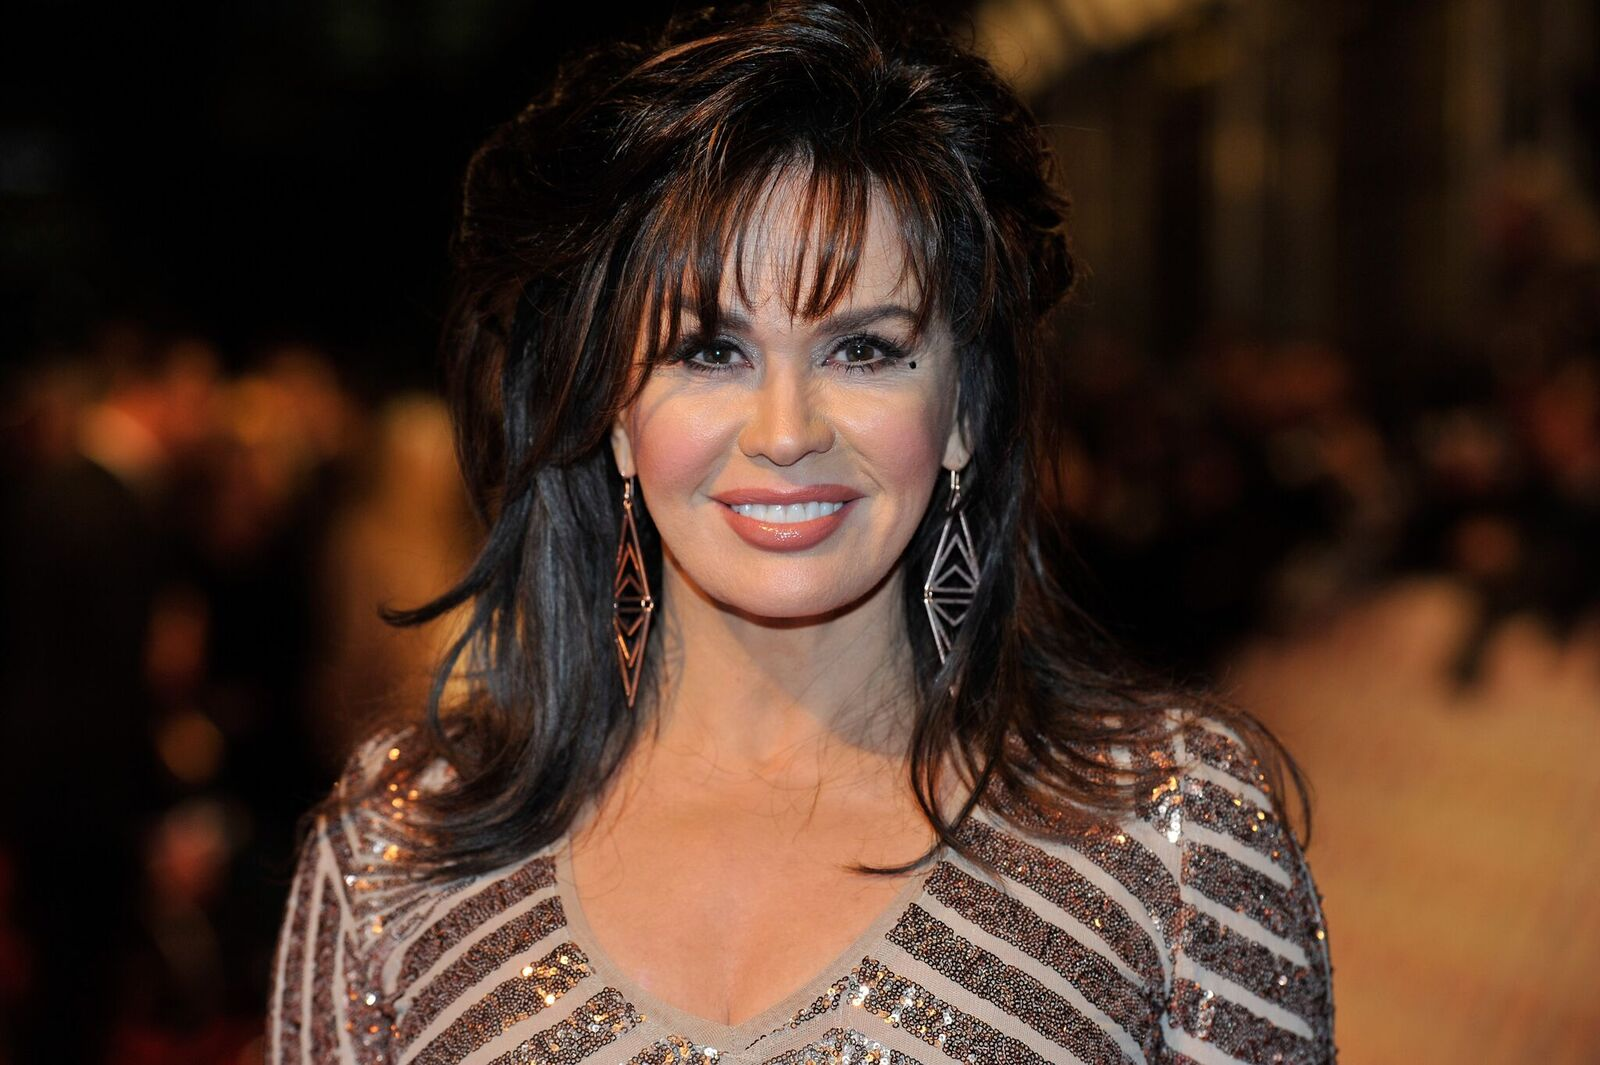 Marie Osmond attends the the National Television Awards at 02 Arena on January 23, 2013. | Photo: Getty Images